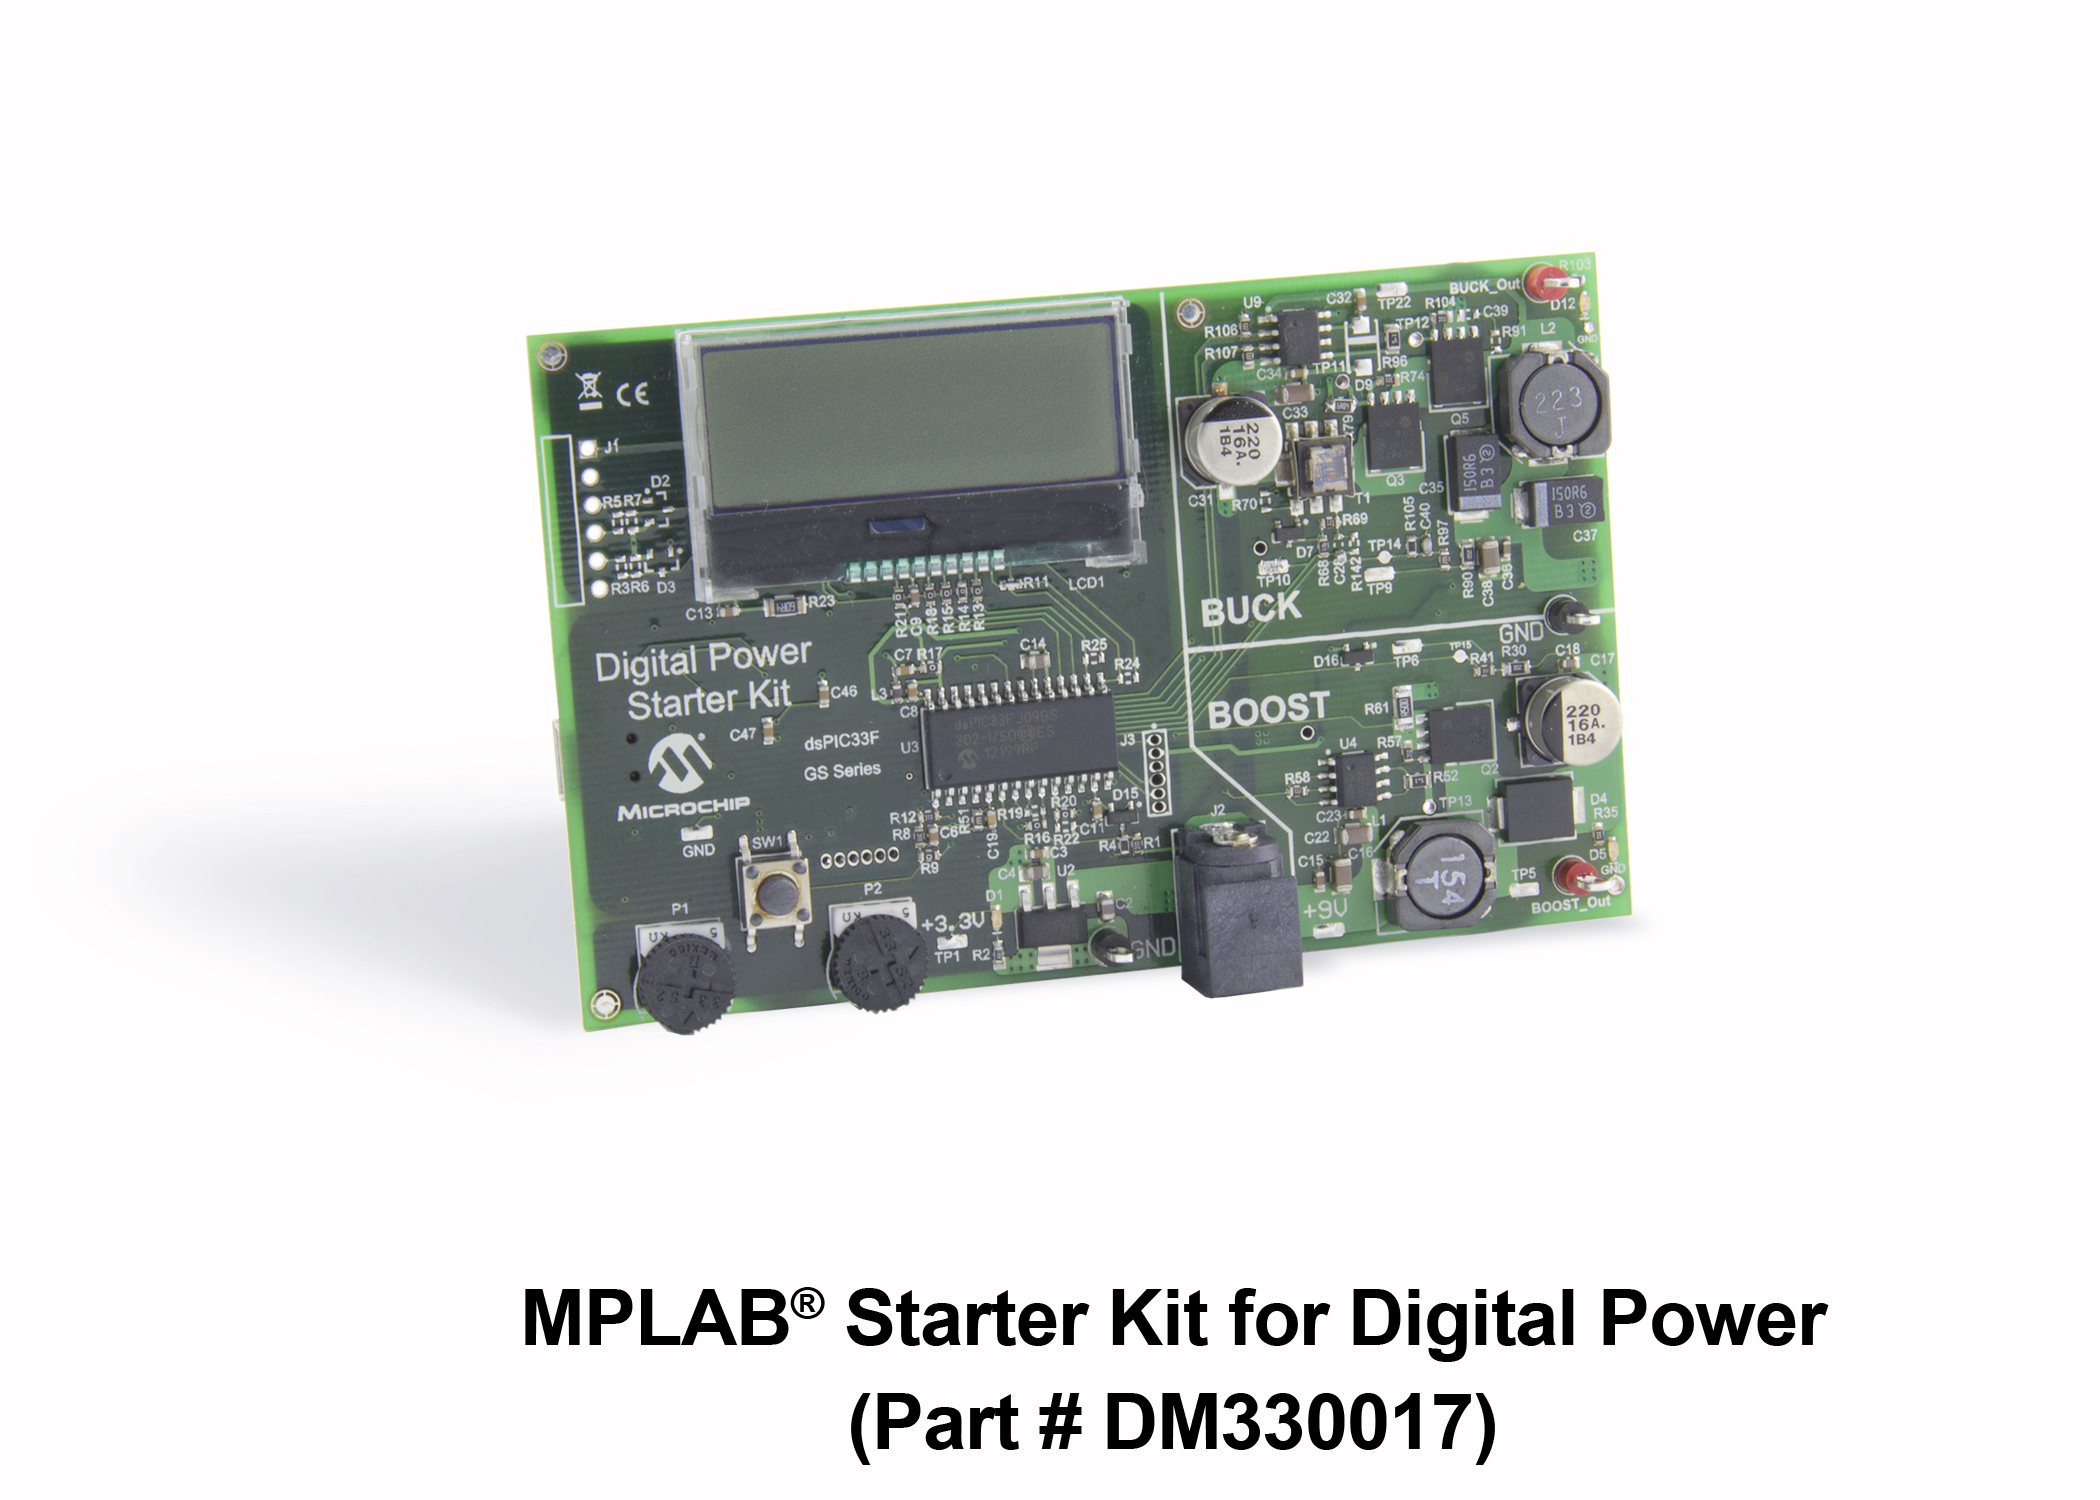 Development Tools Motion Sensor And Bluetooth Circuit Board Spare Parts Accessories The Mplab Starter Kit For Digital Power Allows User To Easily Explore Capabilities Features Of Dspic33f Gs Conversion Family